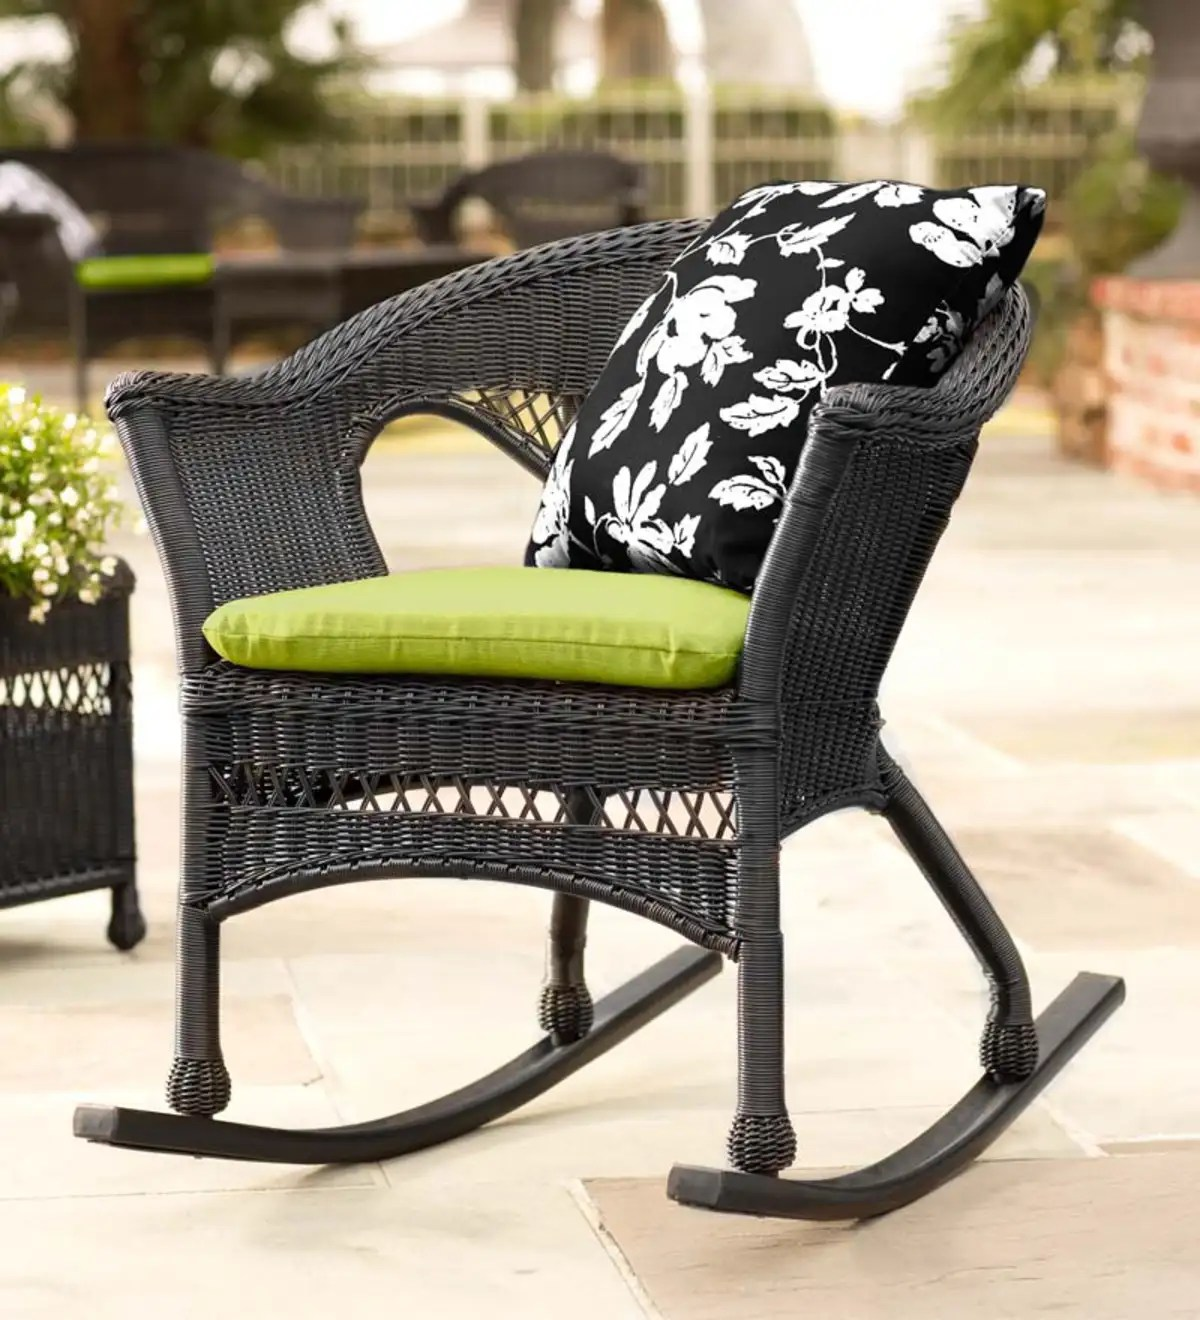 Black Wicker Rocking Chairs Easy Care Resin Wicker Rocker All Weather Wicker